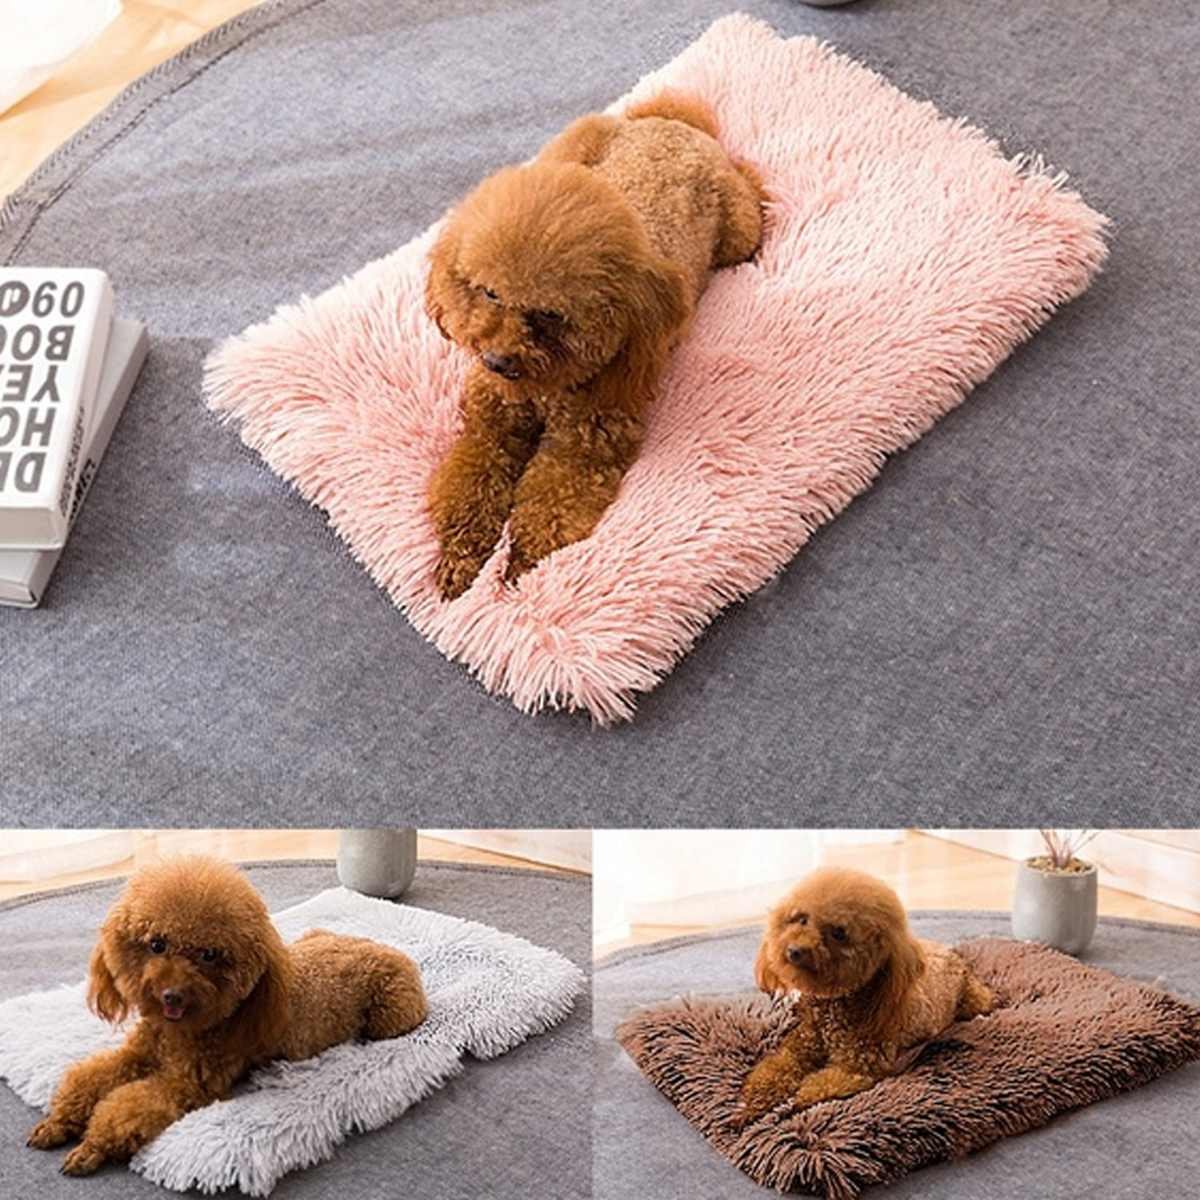 Fluffy Long Plush Pet Blankets Dog Cat Bed Mats Deep Sleeping Soft Thin Covers for Summer Winter Bed Use Blankets Cat Mattress,W,56X36Cm,China